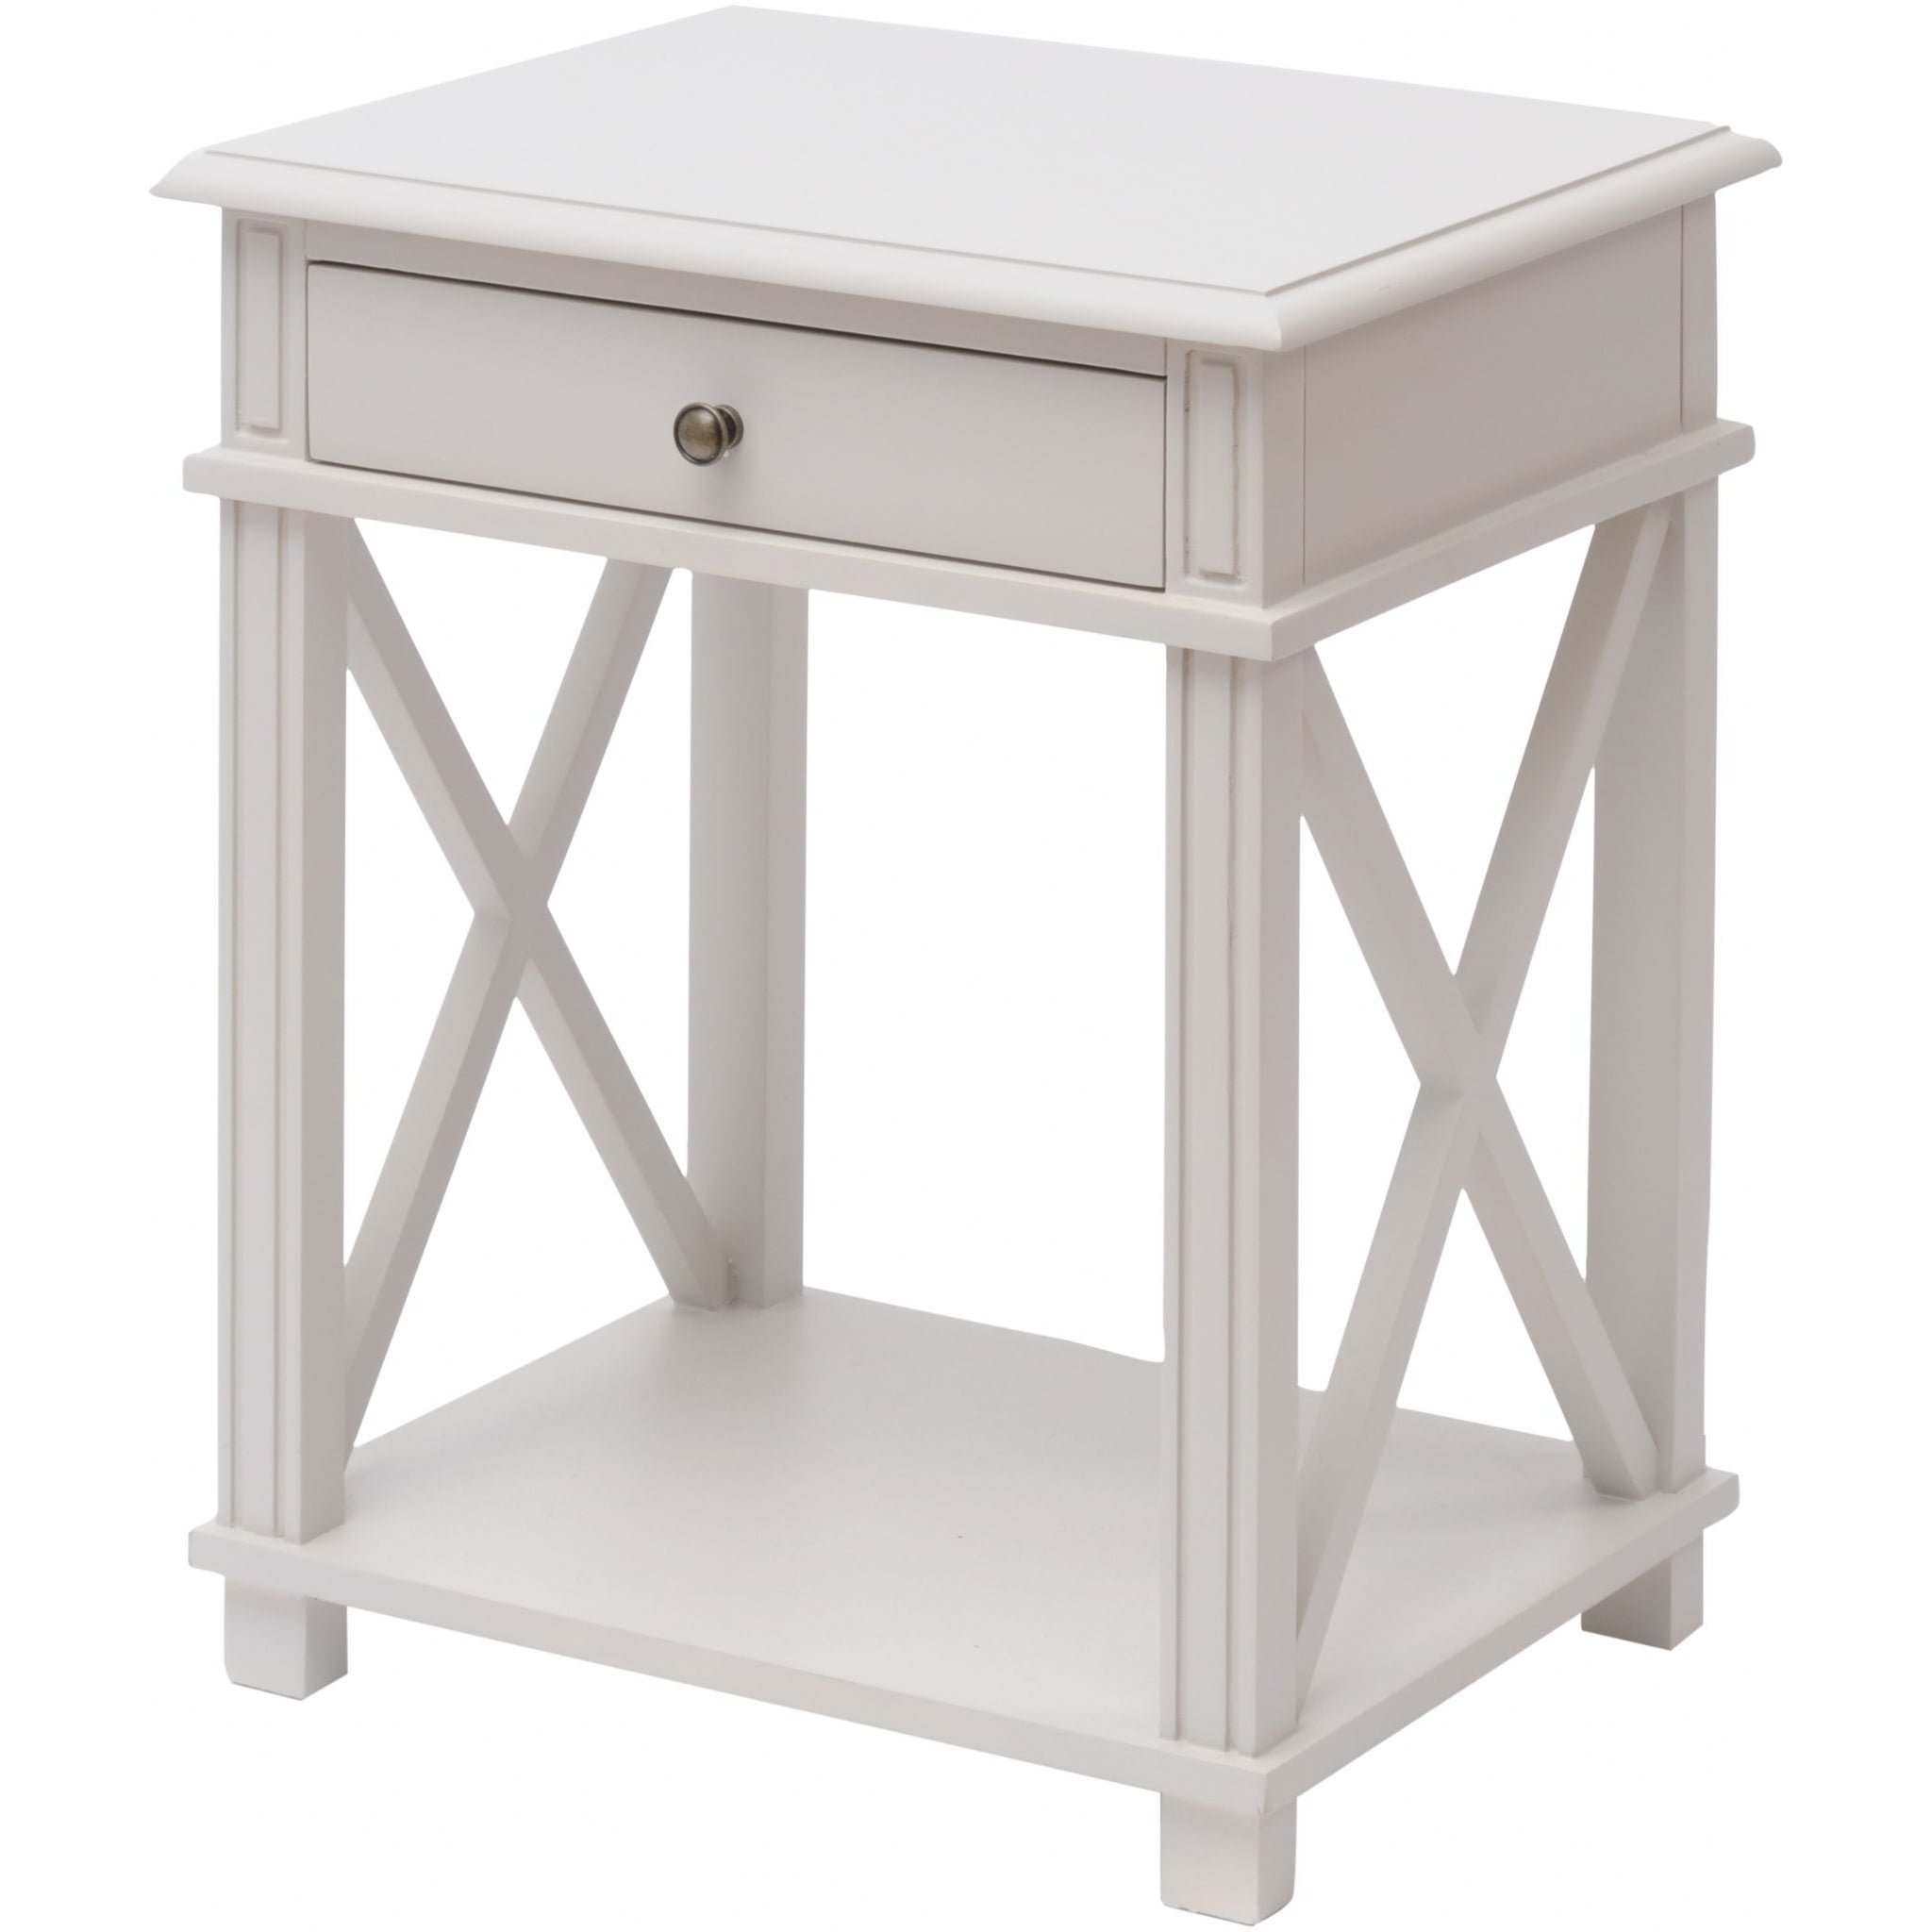 painted grey bedside table swanky interiors. Black Bedroom Furniture Sets. Home Design Ideas